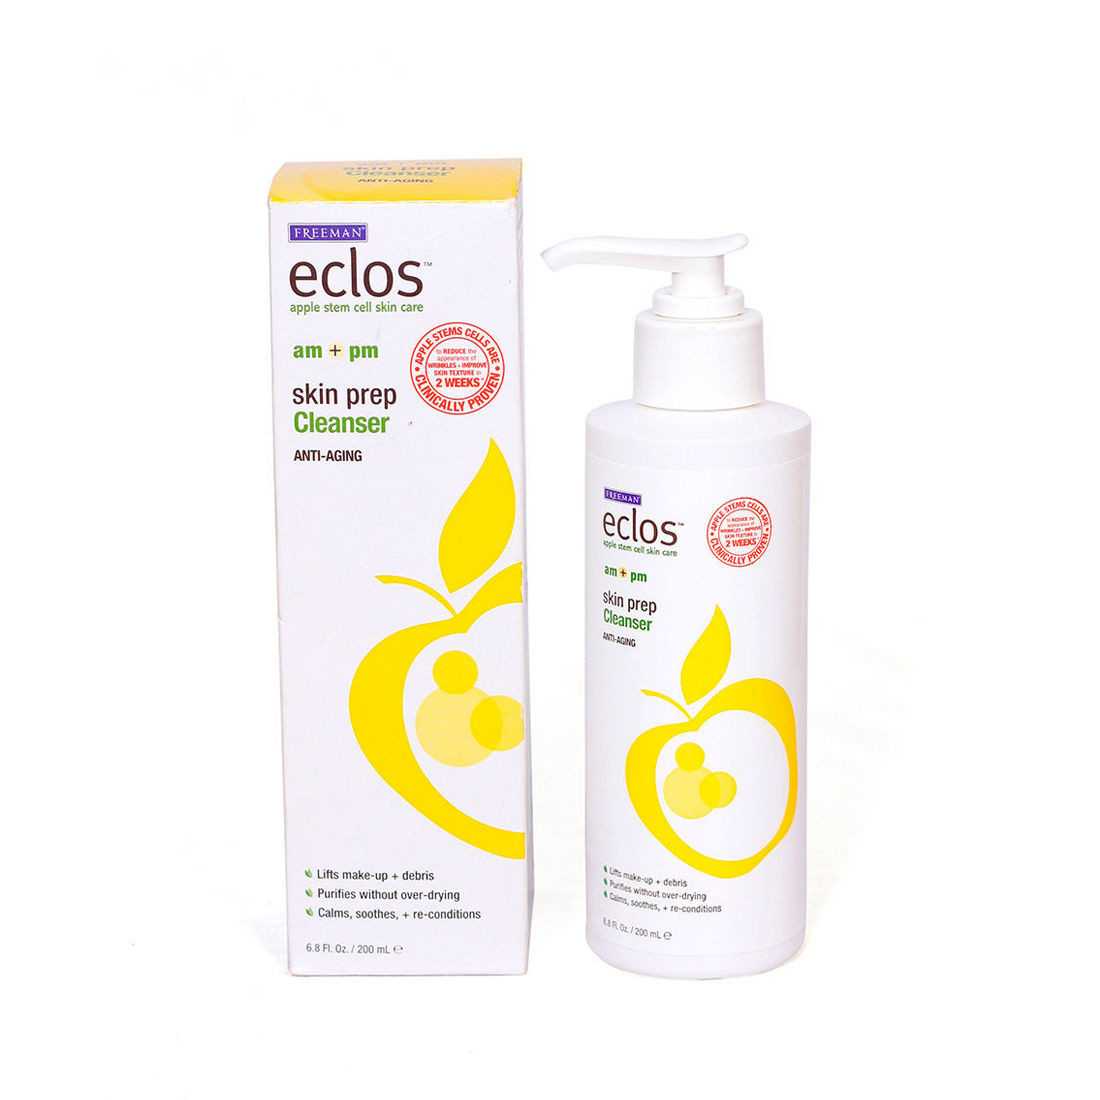 Eclos (Apple Stem Cell Skin Care)